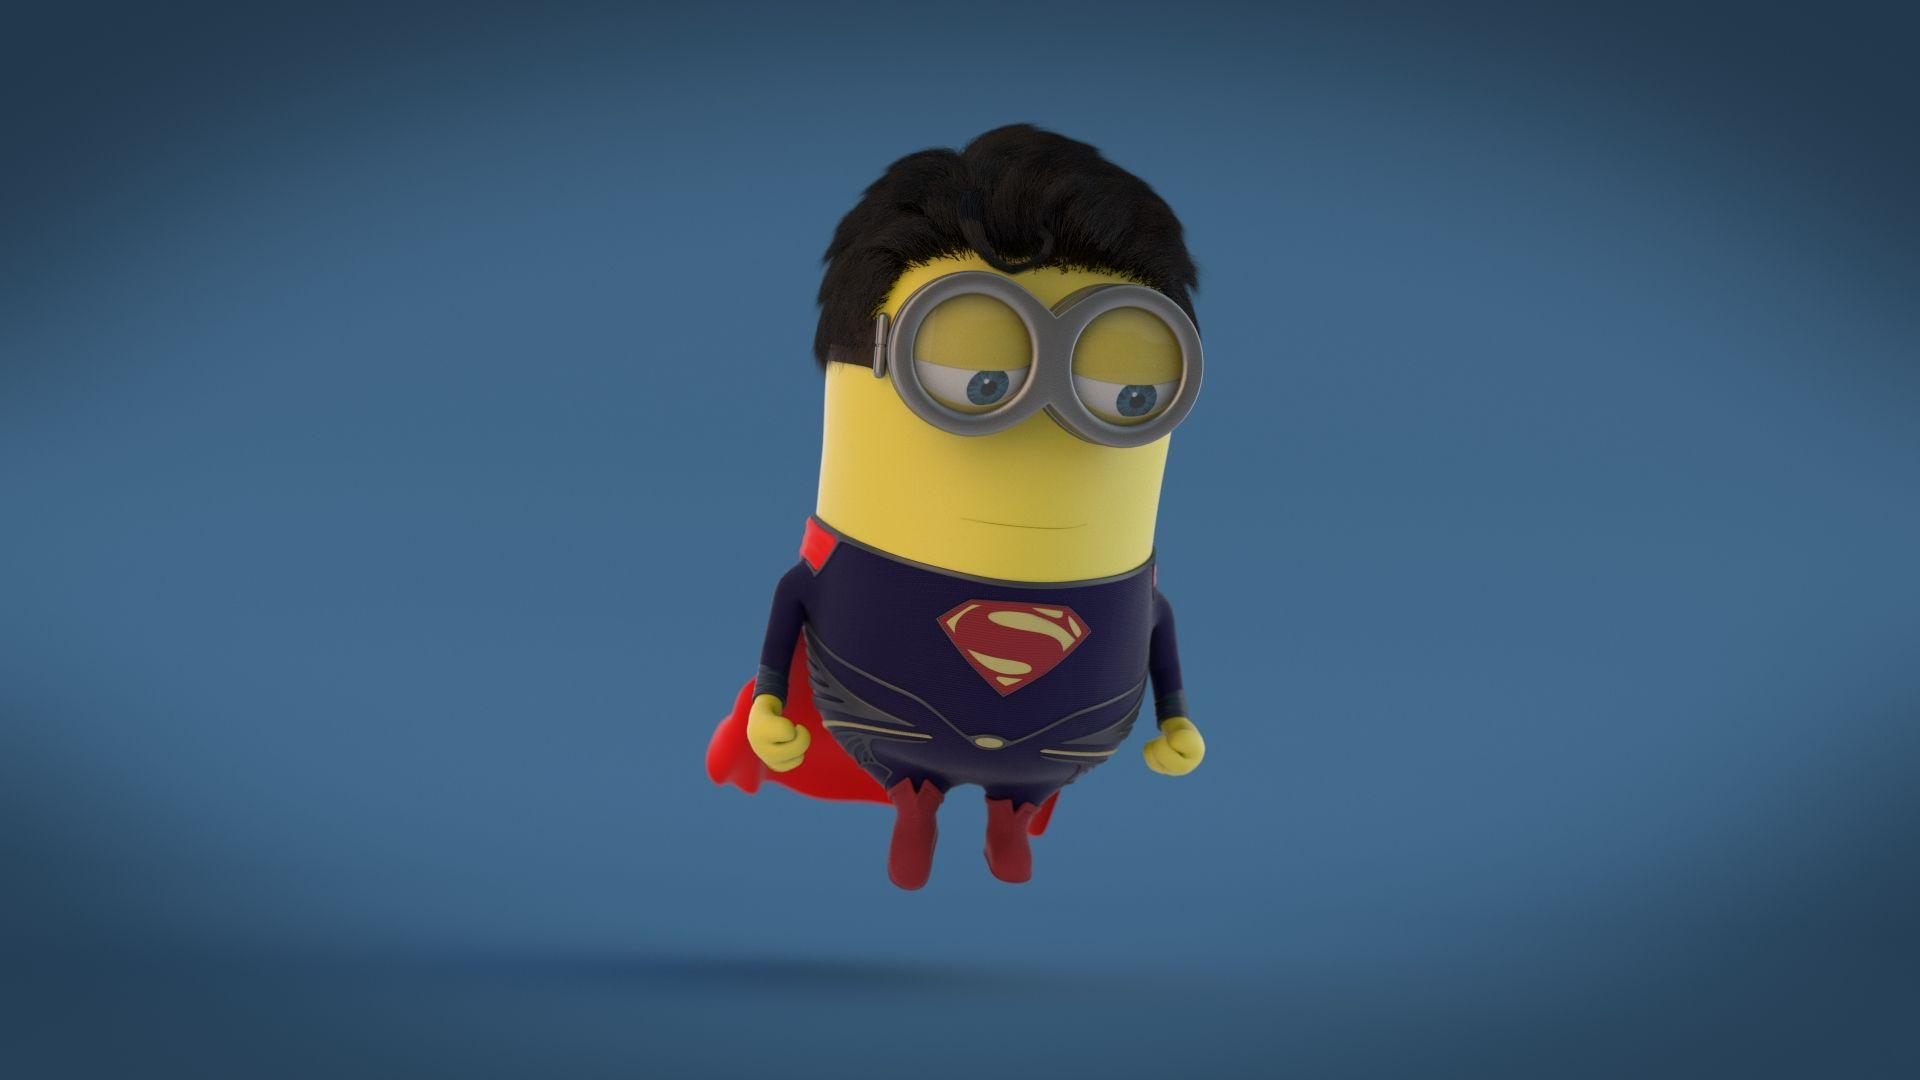 Cute Minion Wallpapers Wallpaper Cave